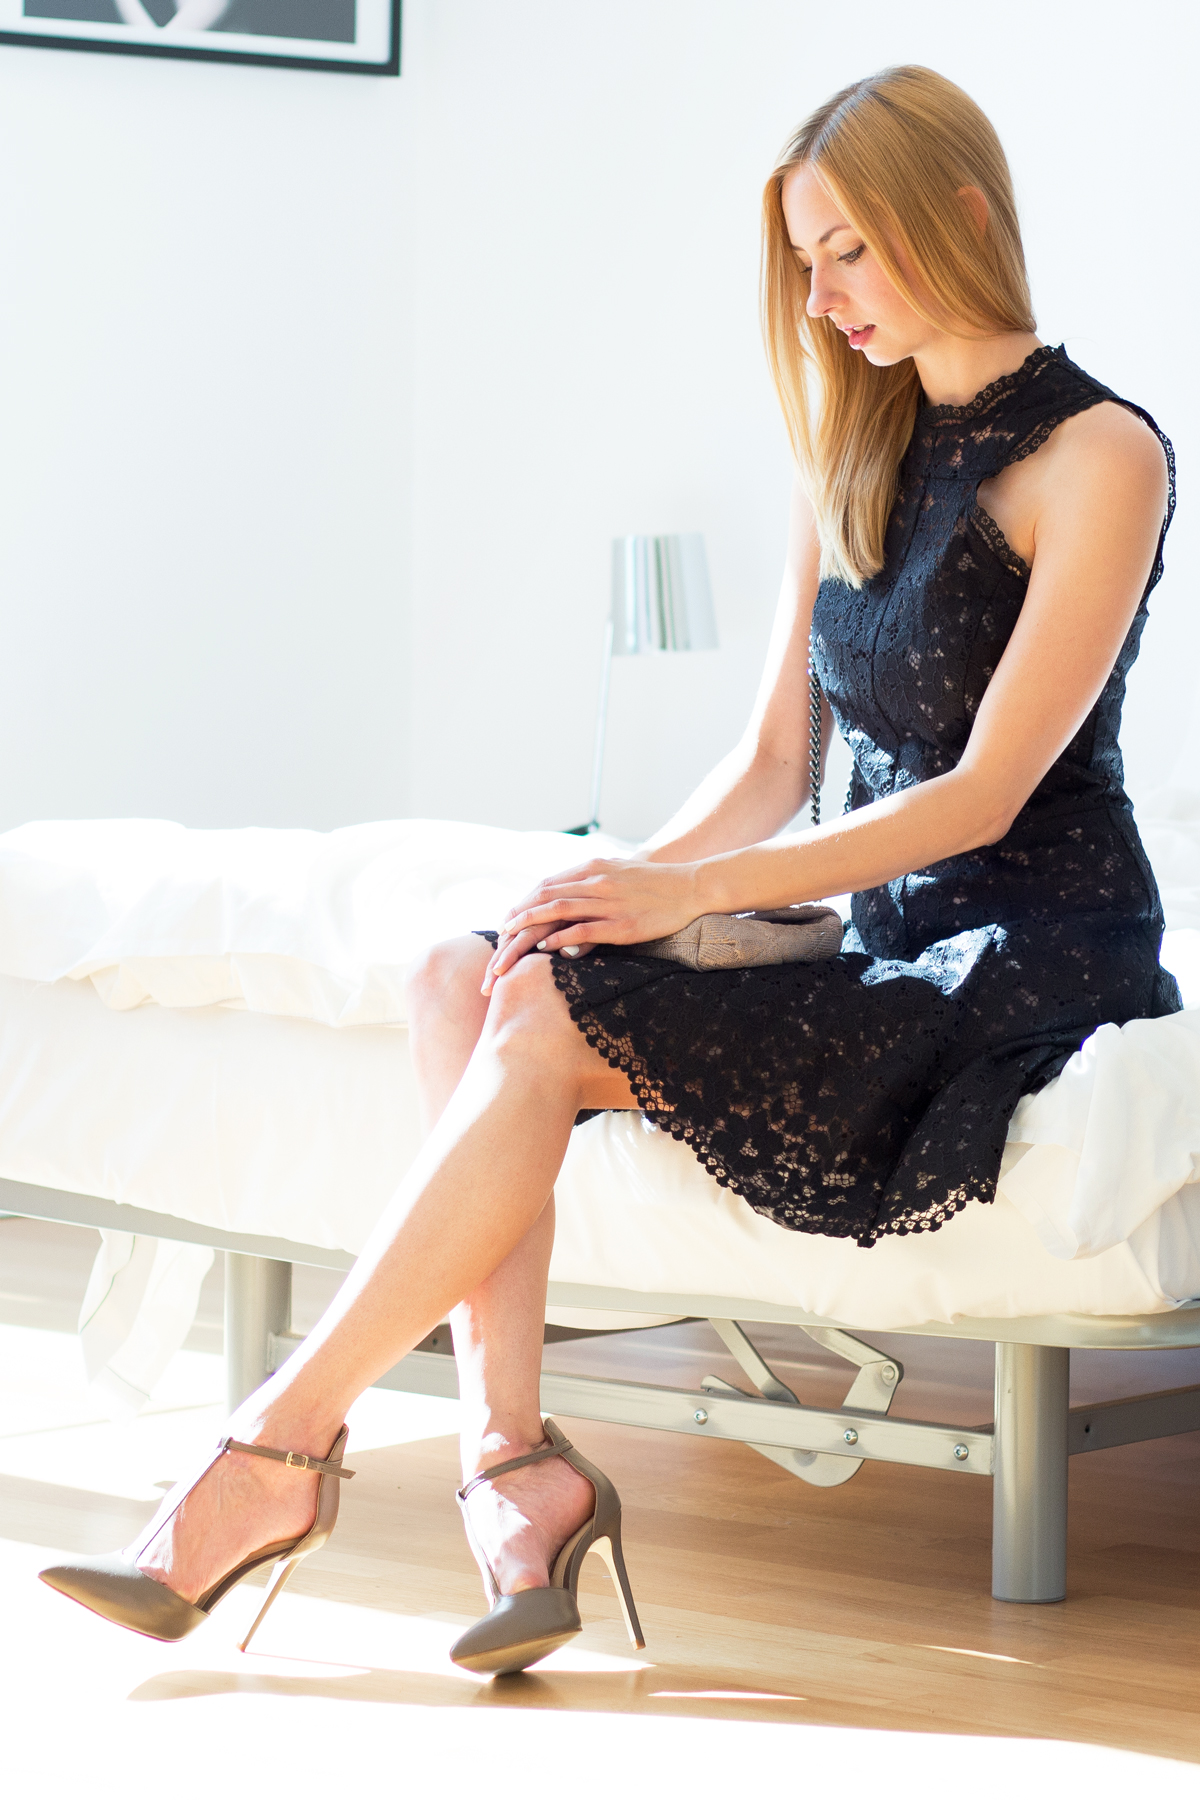 The Black Lace Dress - MBWFB